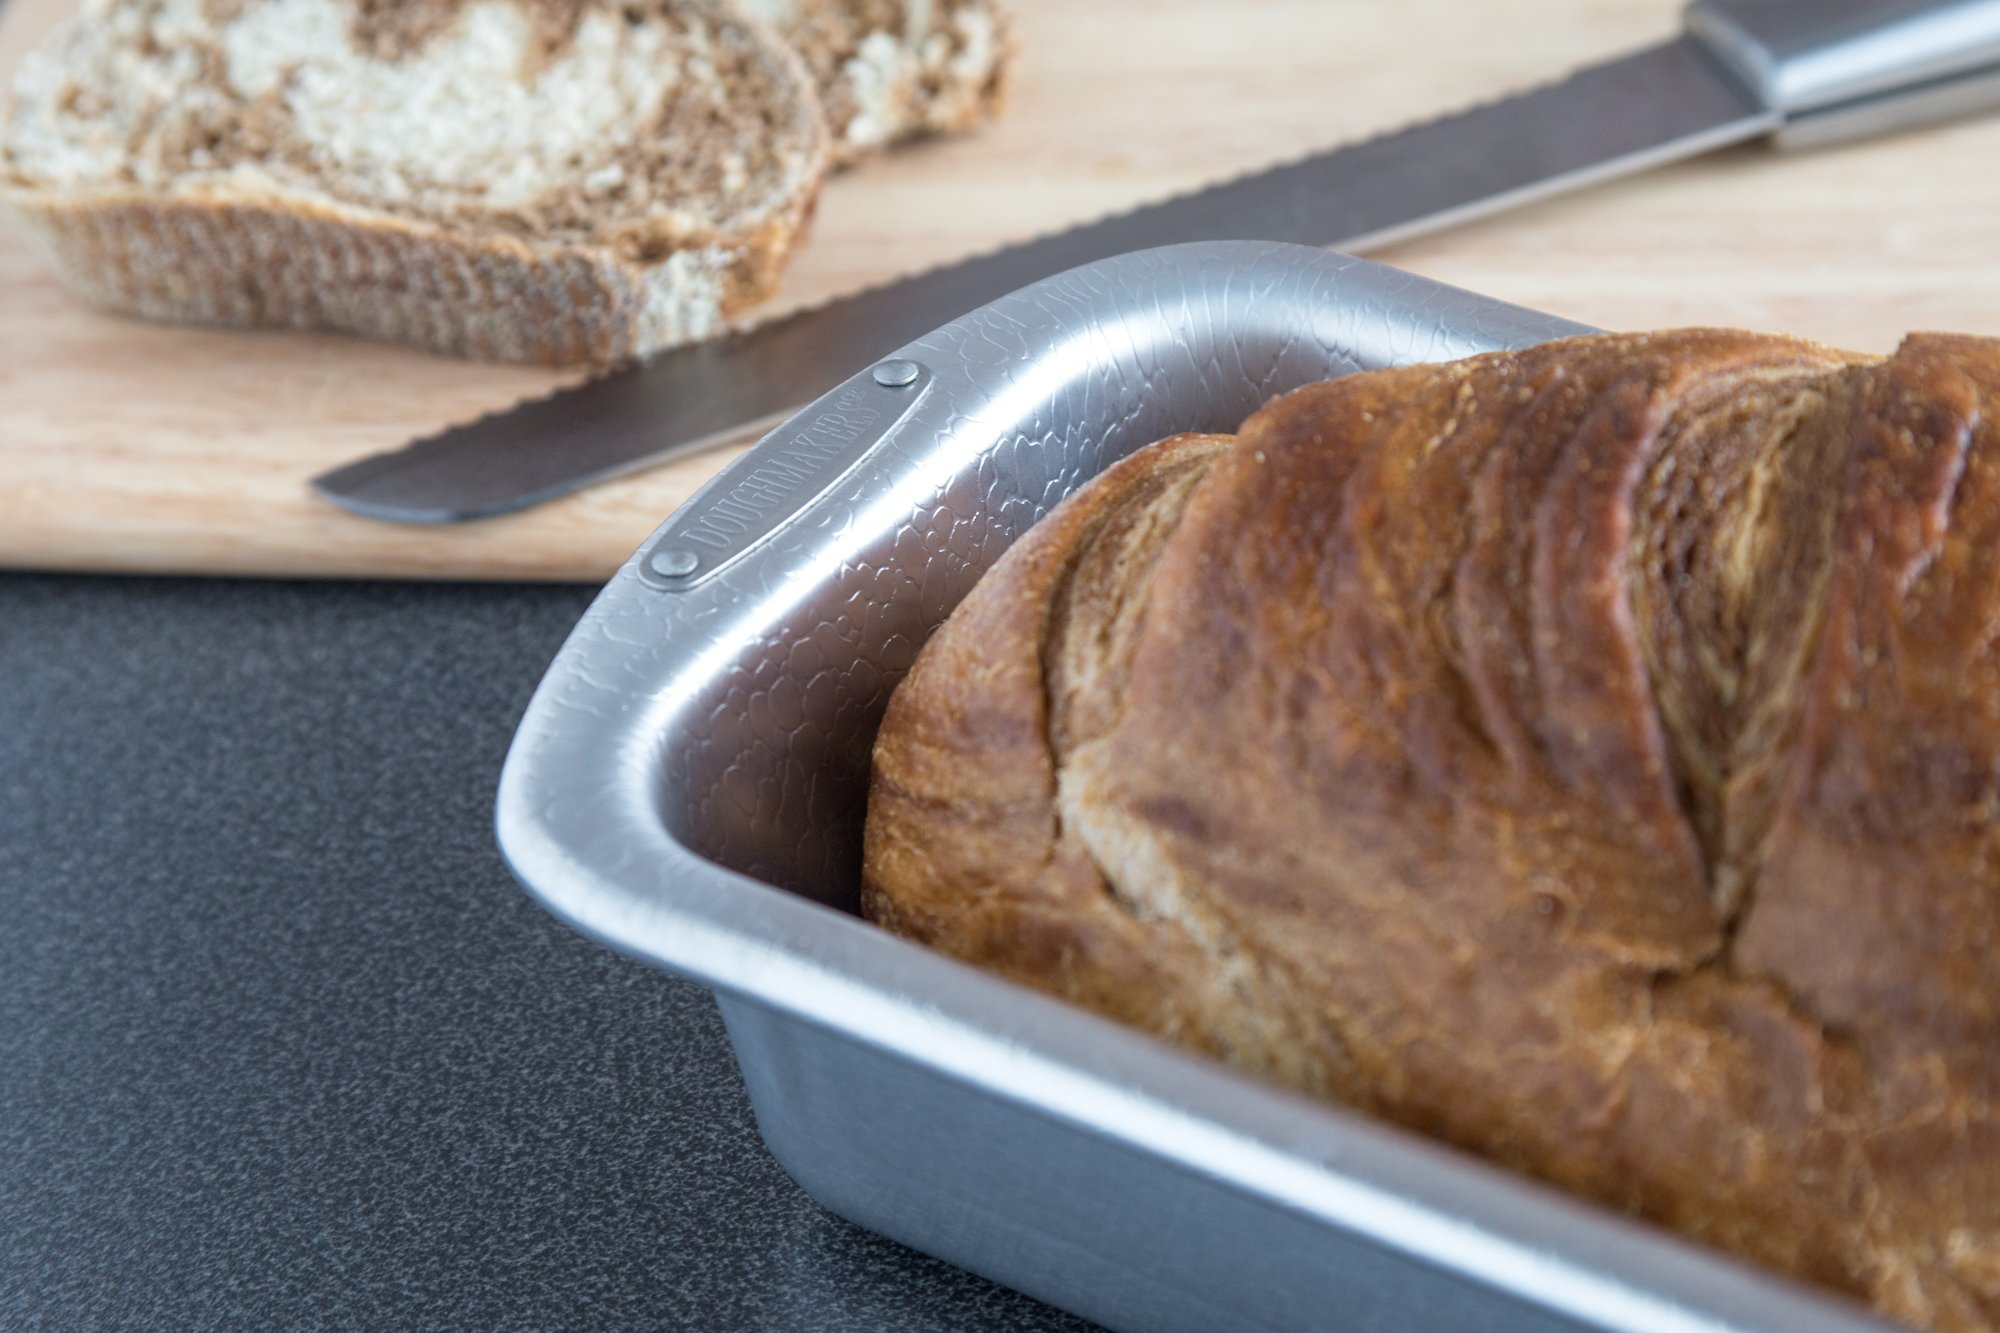 Loaf Pan Commercial Grade Aluminum 8.5'' x 4.5'' by Doughmakers (Image #5)